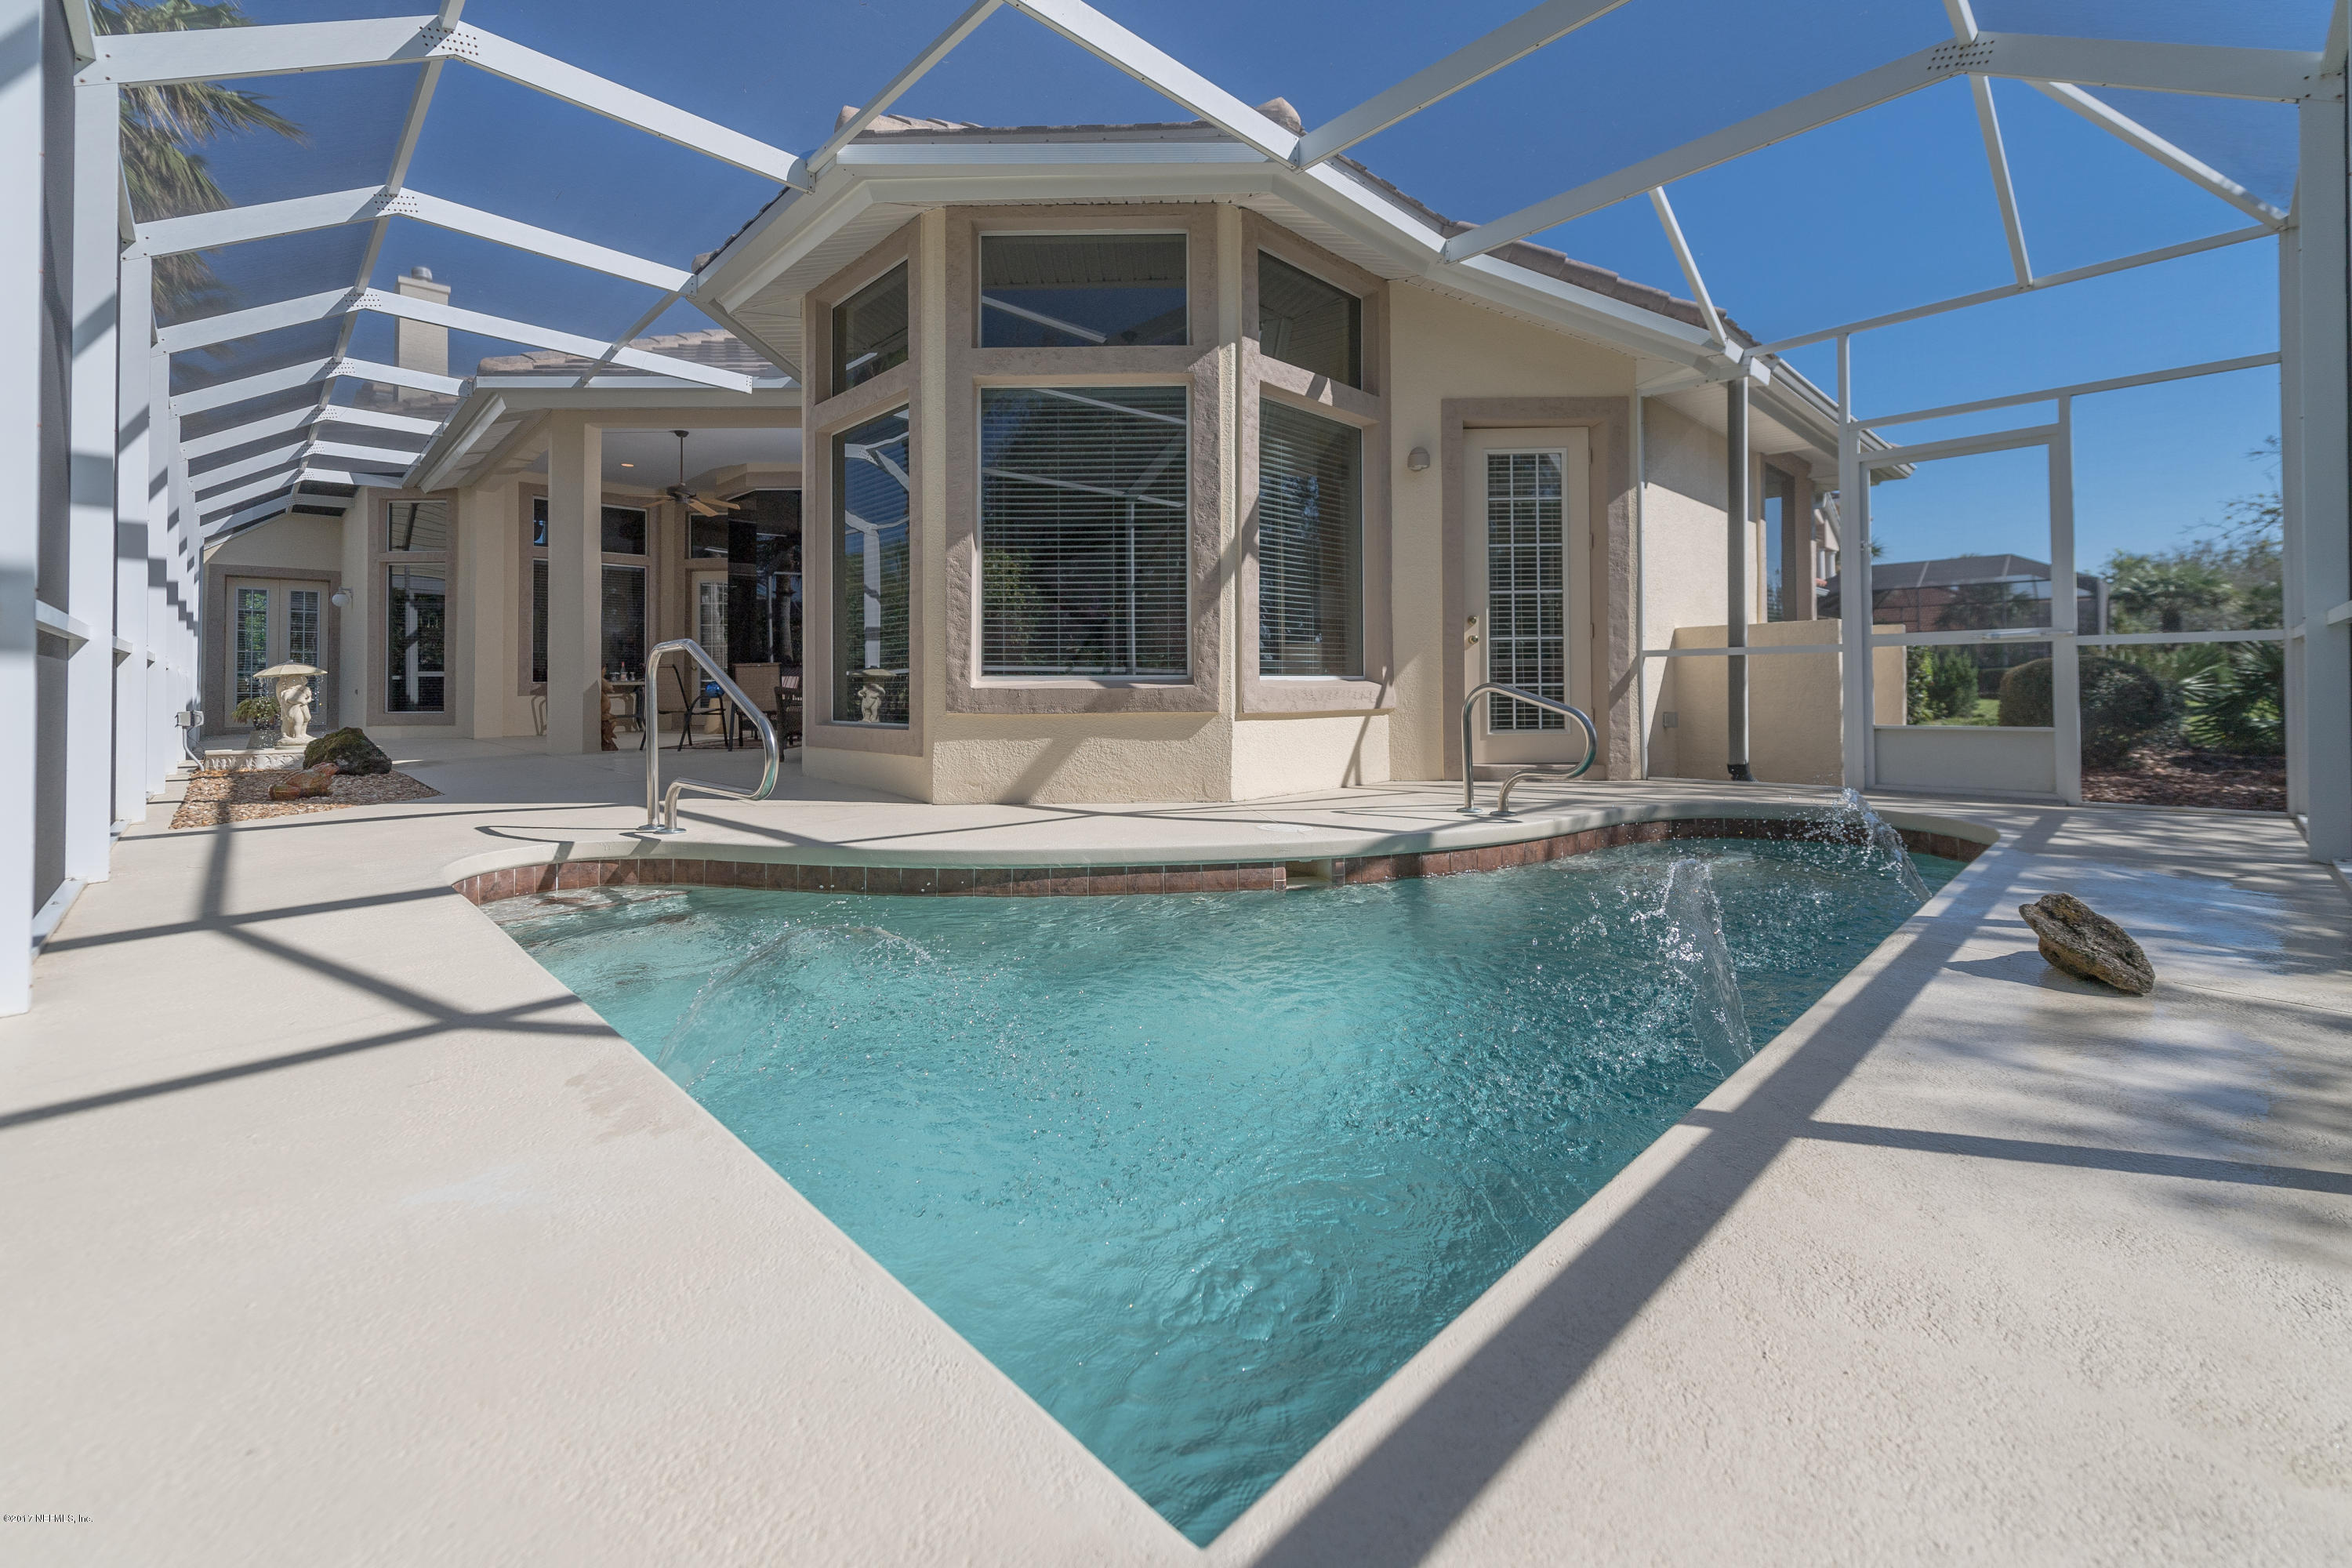 14 SANDPIPER, PALM COAST, FLORIDA 32137, 3 Bedrooms Bedrooms, ,3 BathroomsBathrooms,Residential - single family,For sale,SANDPIPER,912450